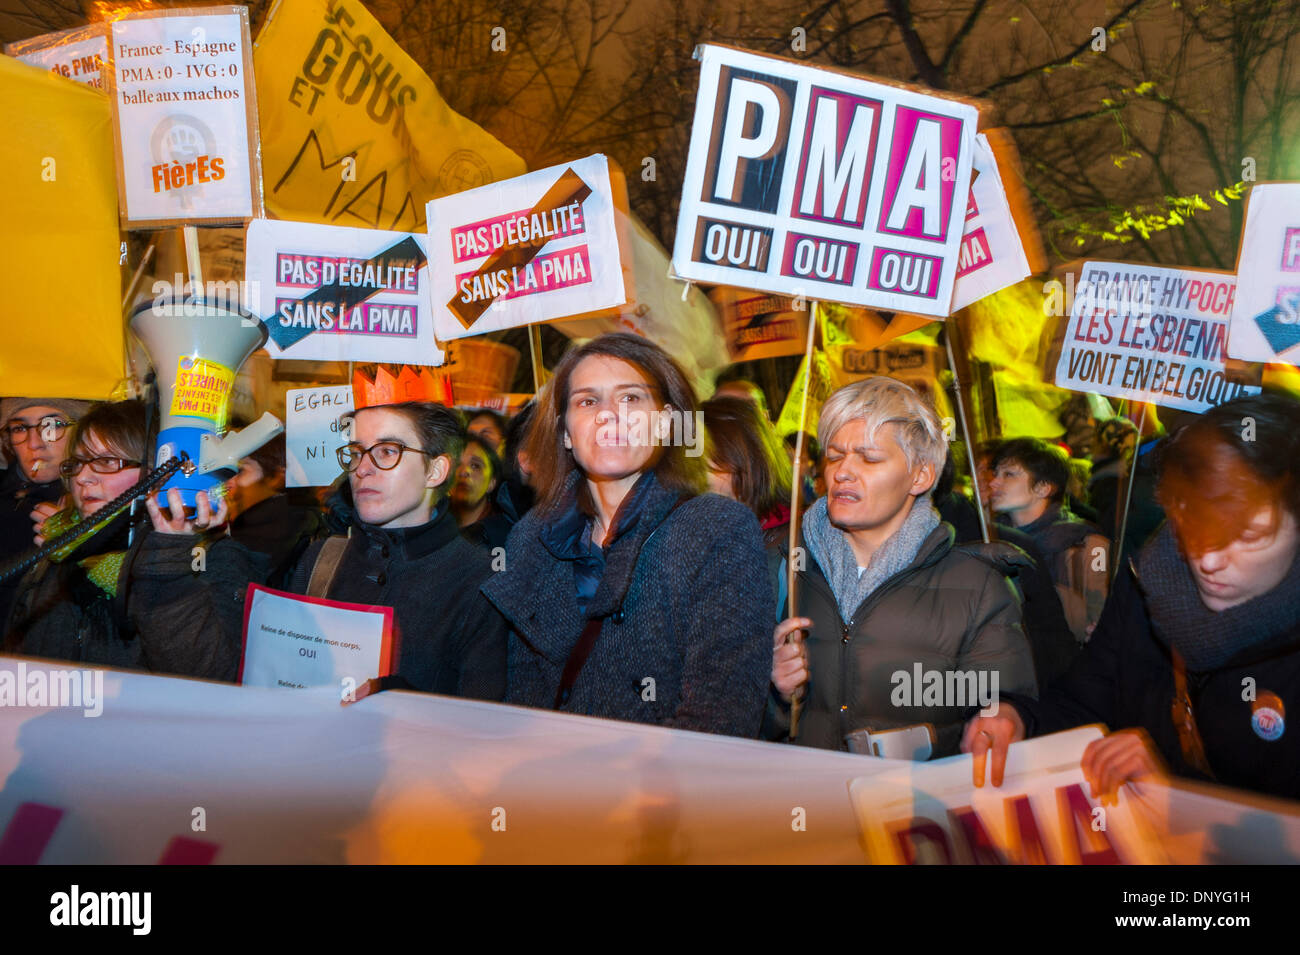 Paris, France. Public Demonstration, French LGBT Activism Groups, Protesting Against the Socialist Government's Refusal to Legalize M.A.P. (medically assisted procreation) (P.M.A.) (artificial Insemination Rights) Women Holding Protest SIgns - Stock Image